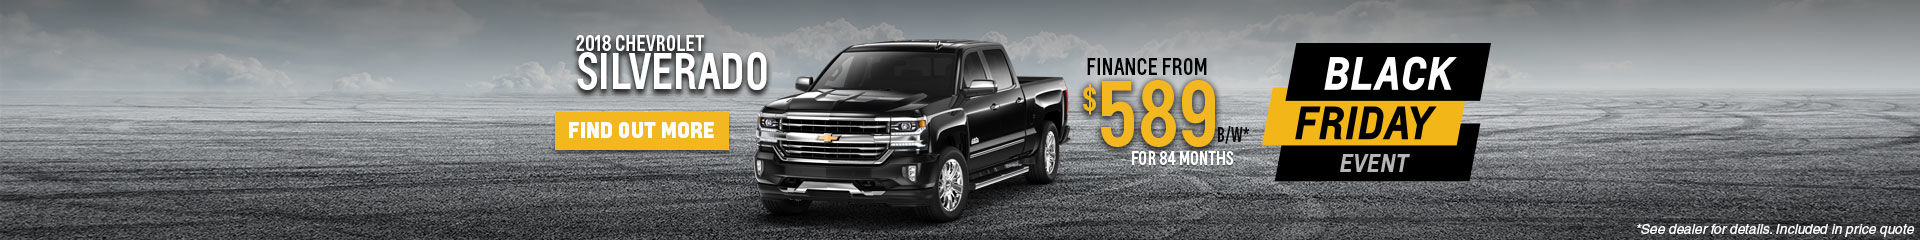 Finance the 2019 Chevrolet Silverado